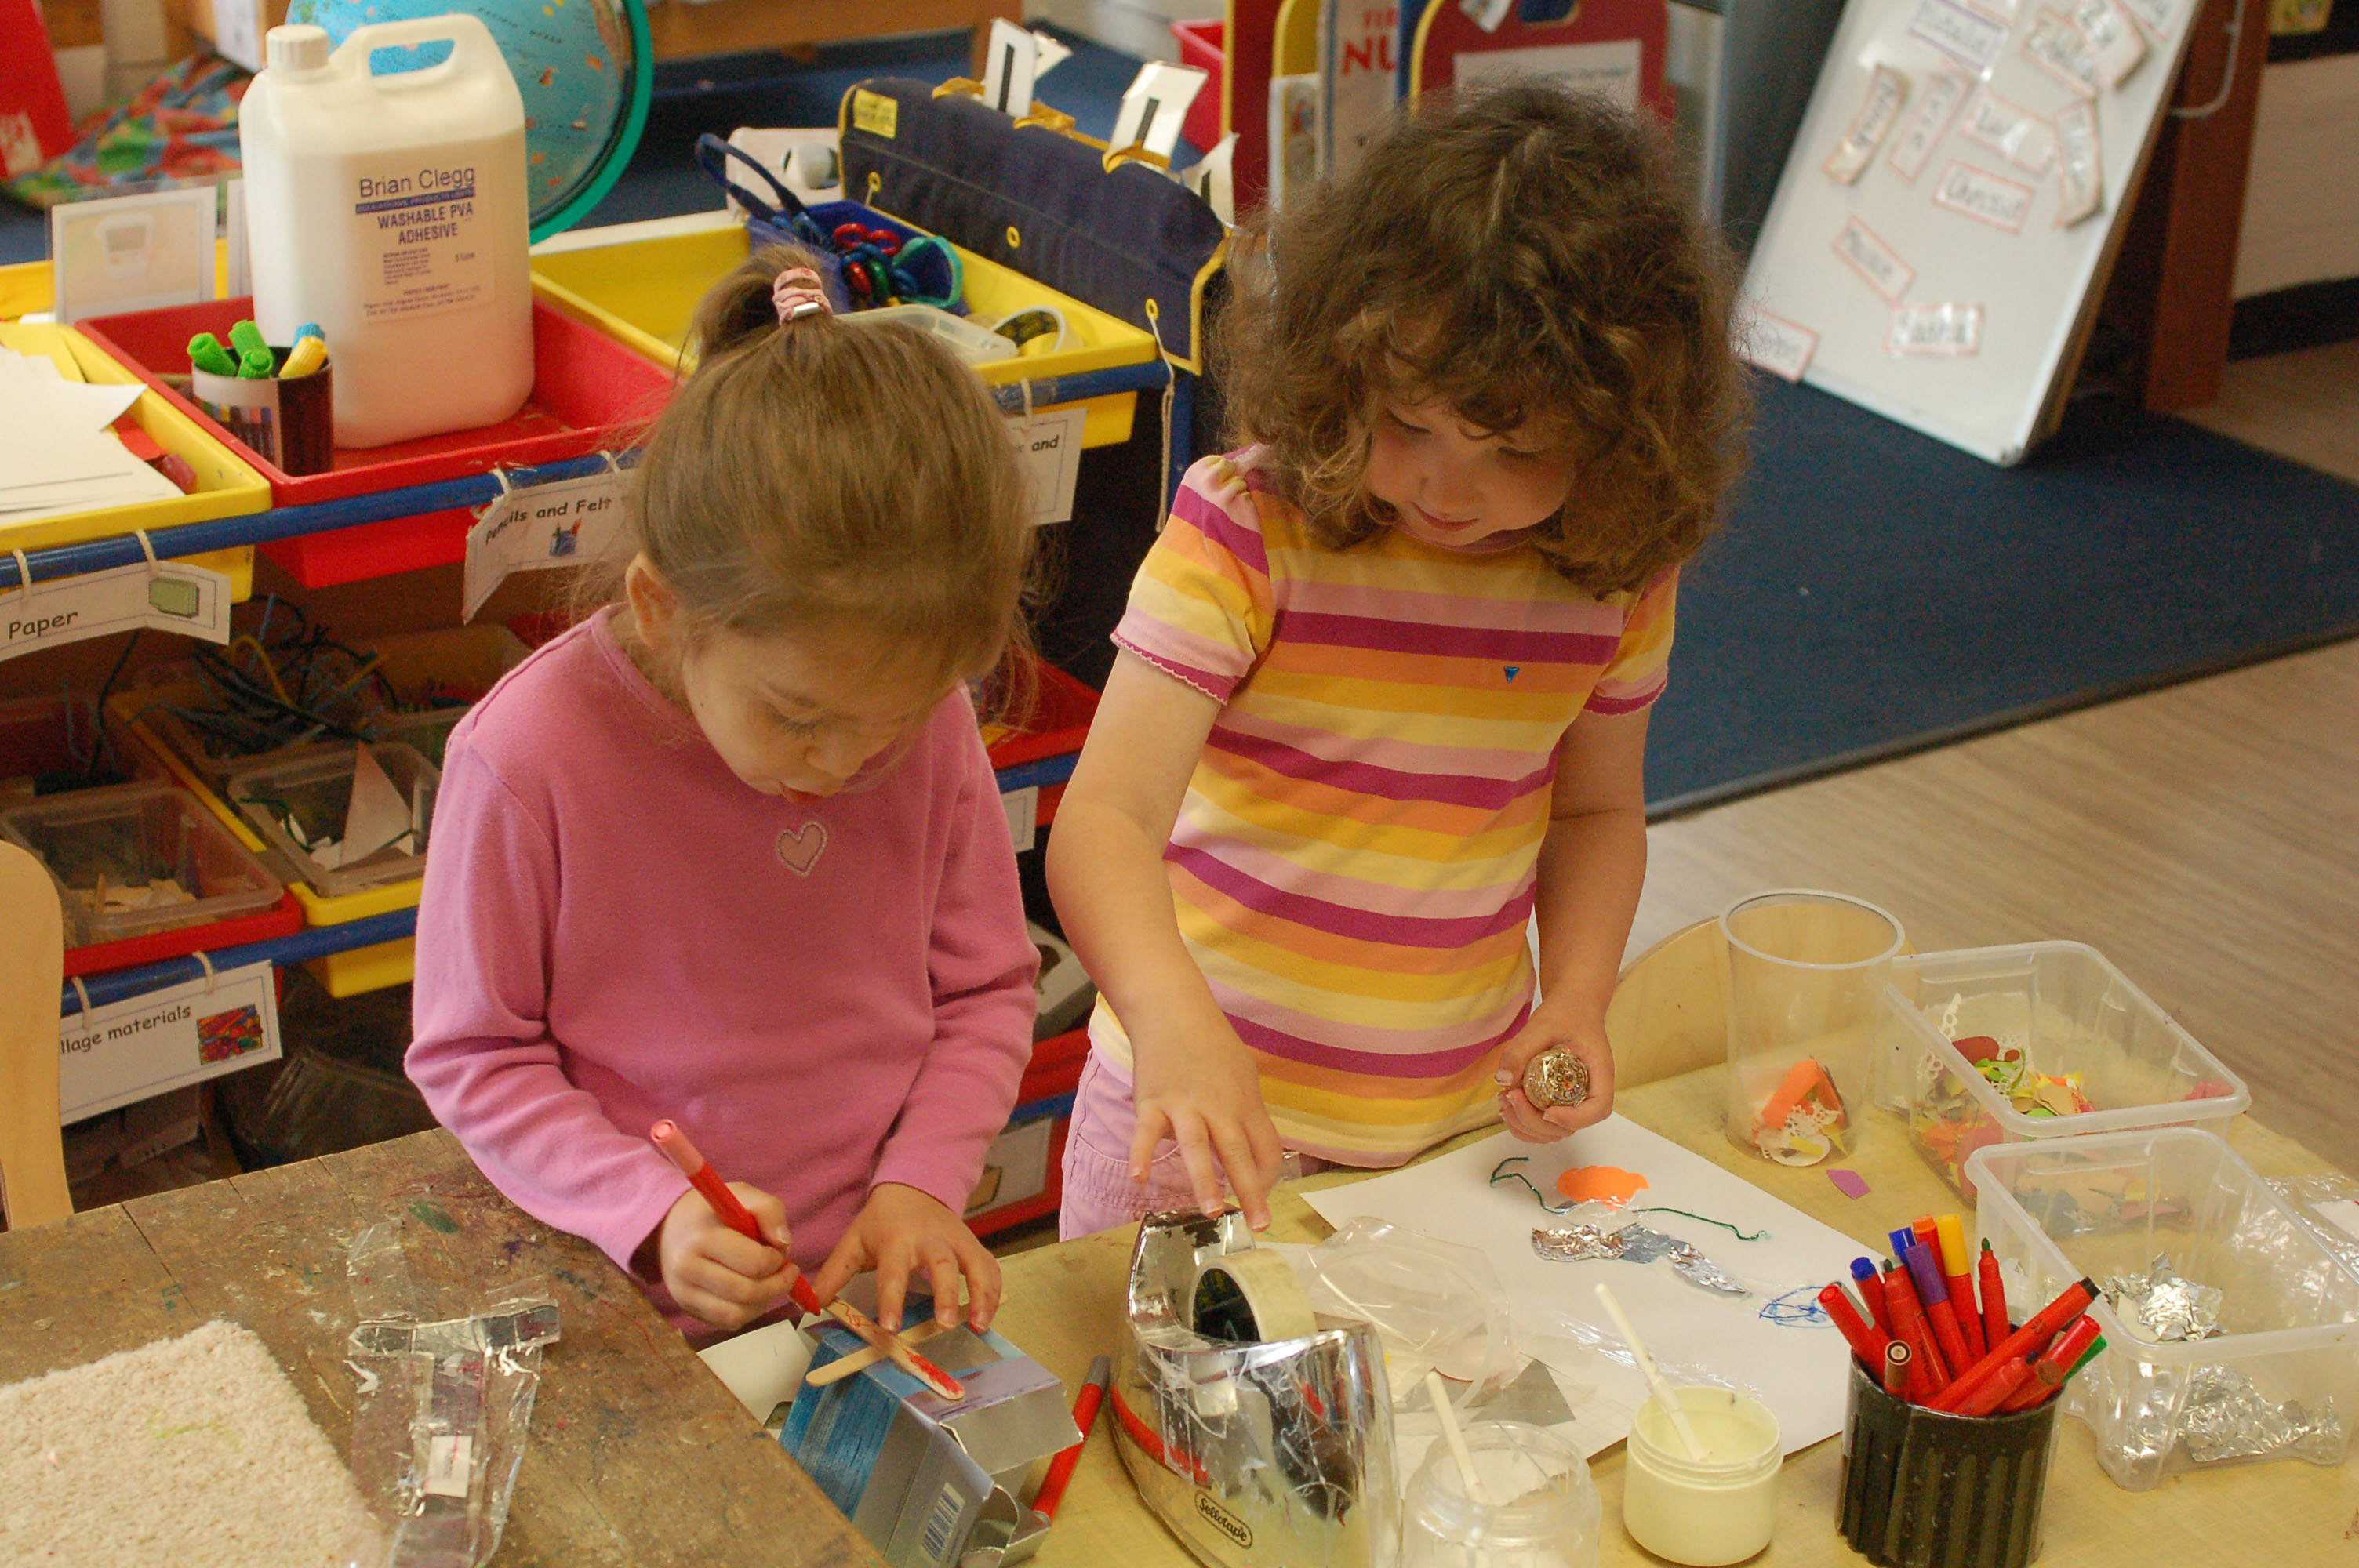 Making and creating